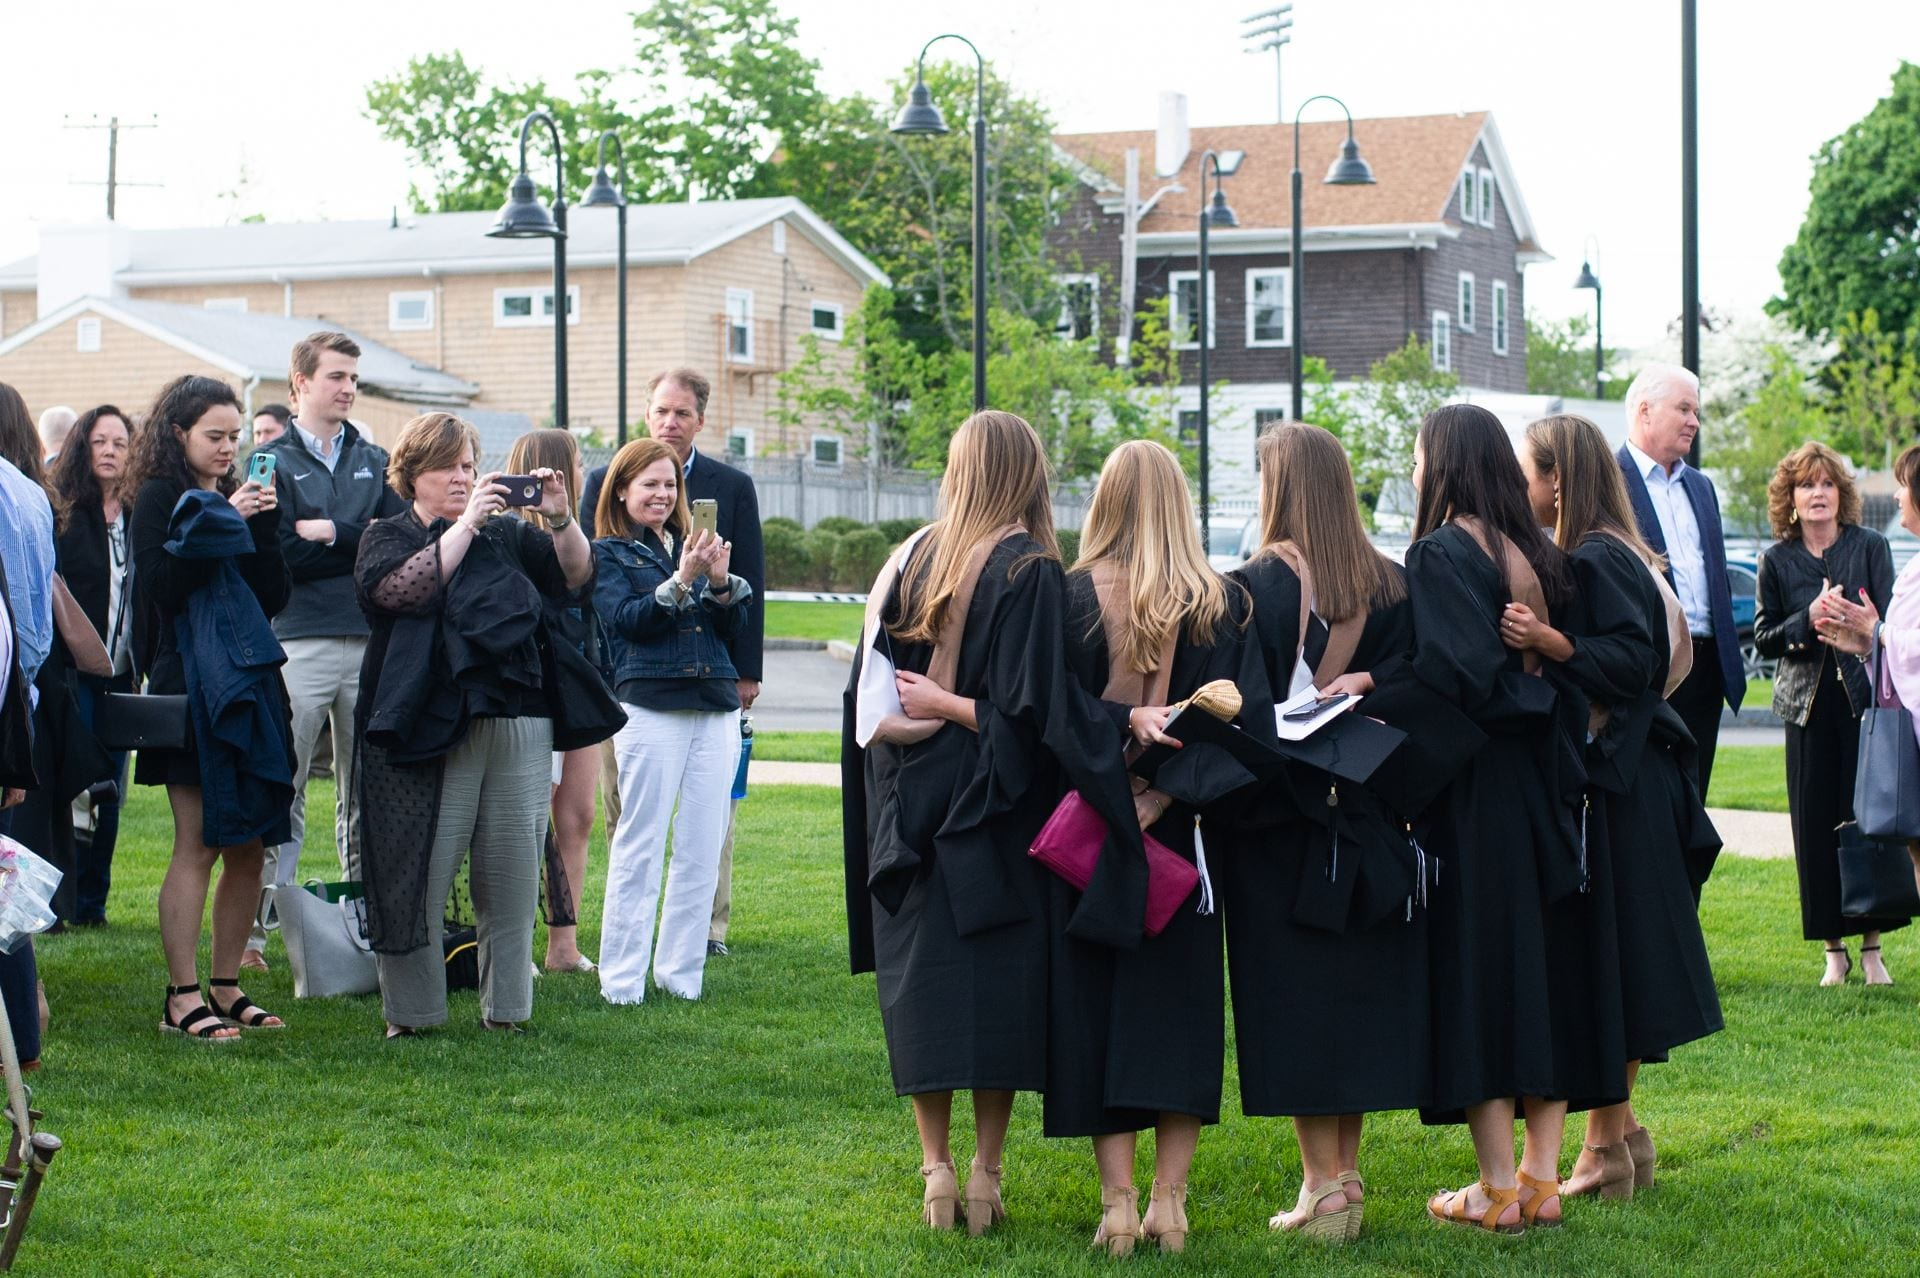 MBA graduates posing for a picture on the Ryan Center Lawn in their graduation robes and MBA hoods.